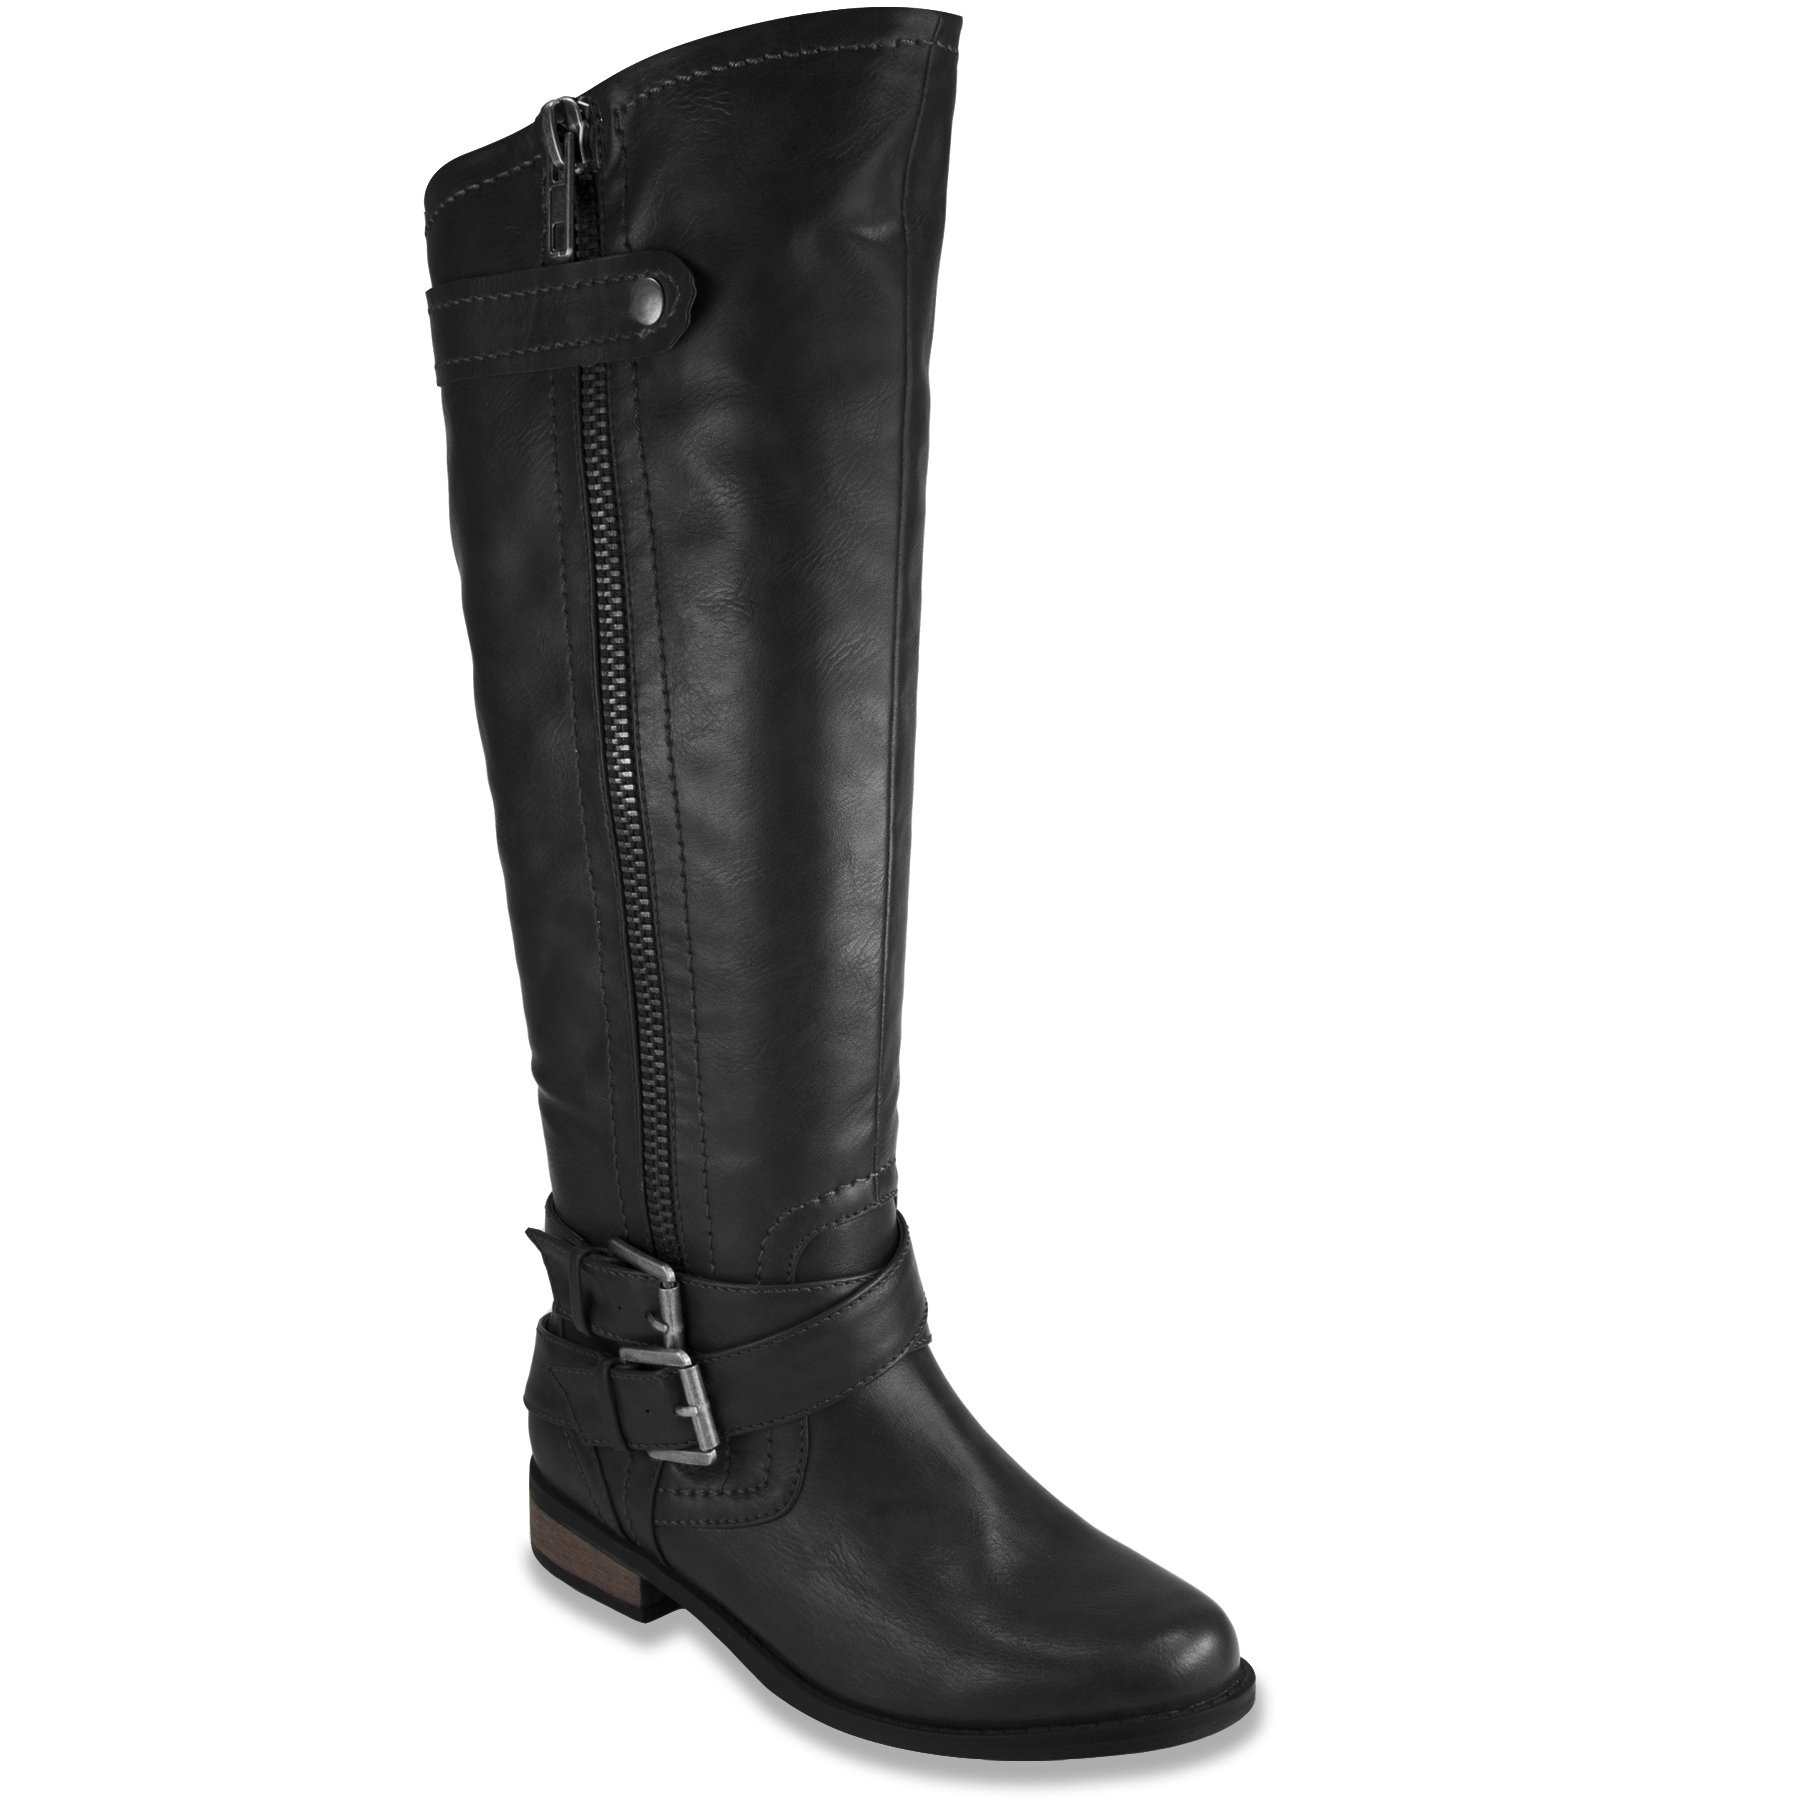 London Fog Womens Hillary Zipper and Buckle Knee High Riding Wide Calf Boot Black 11